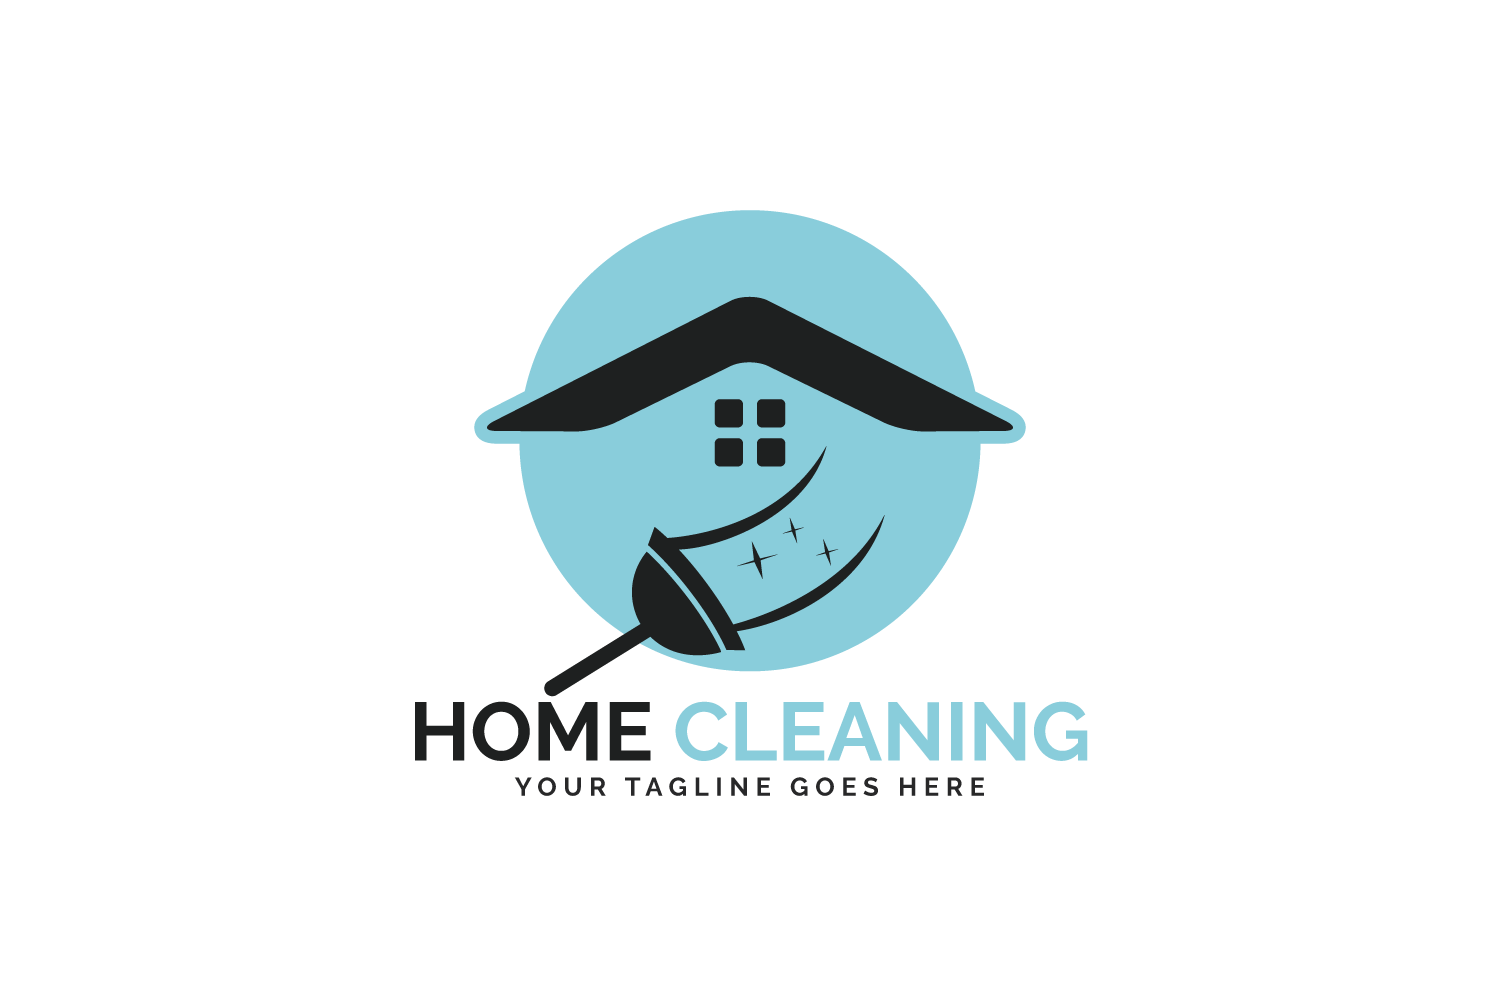 Home Cleaning Vector Logo Design. example image 2